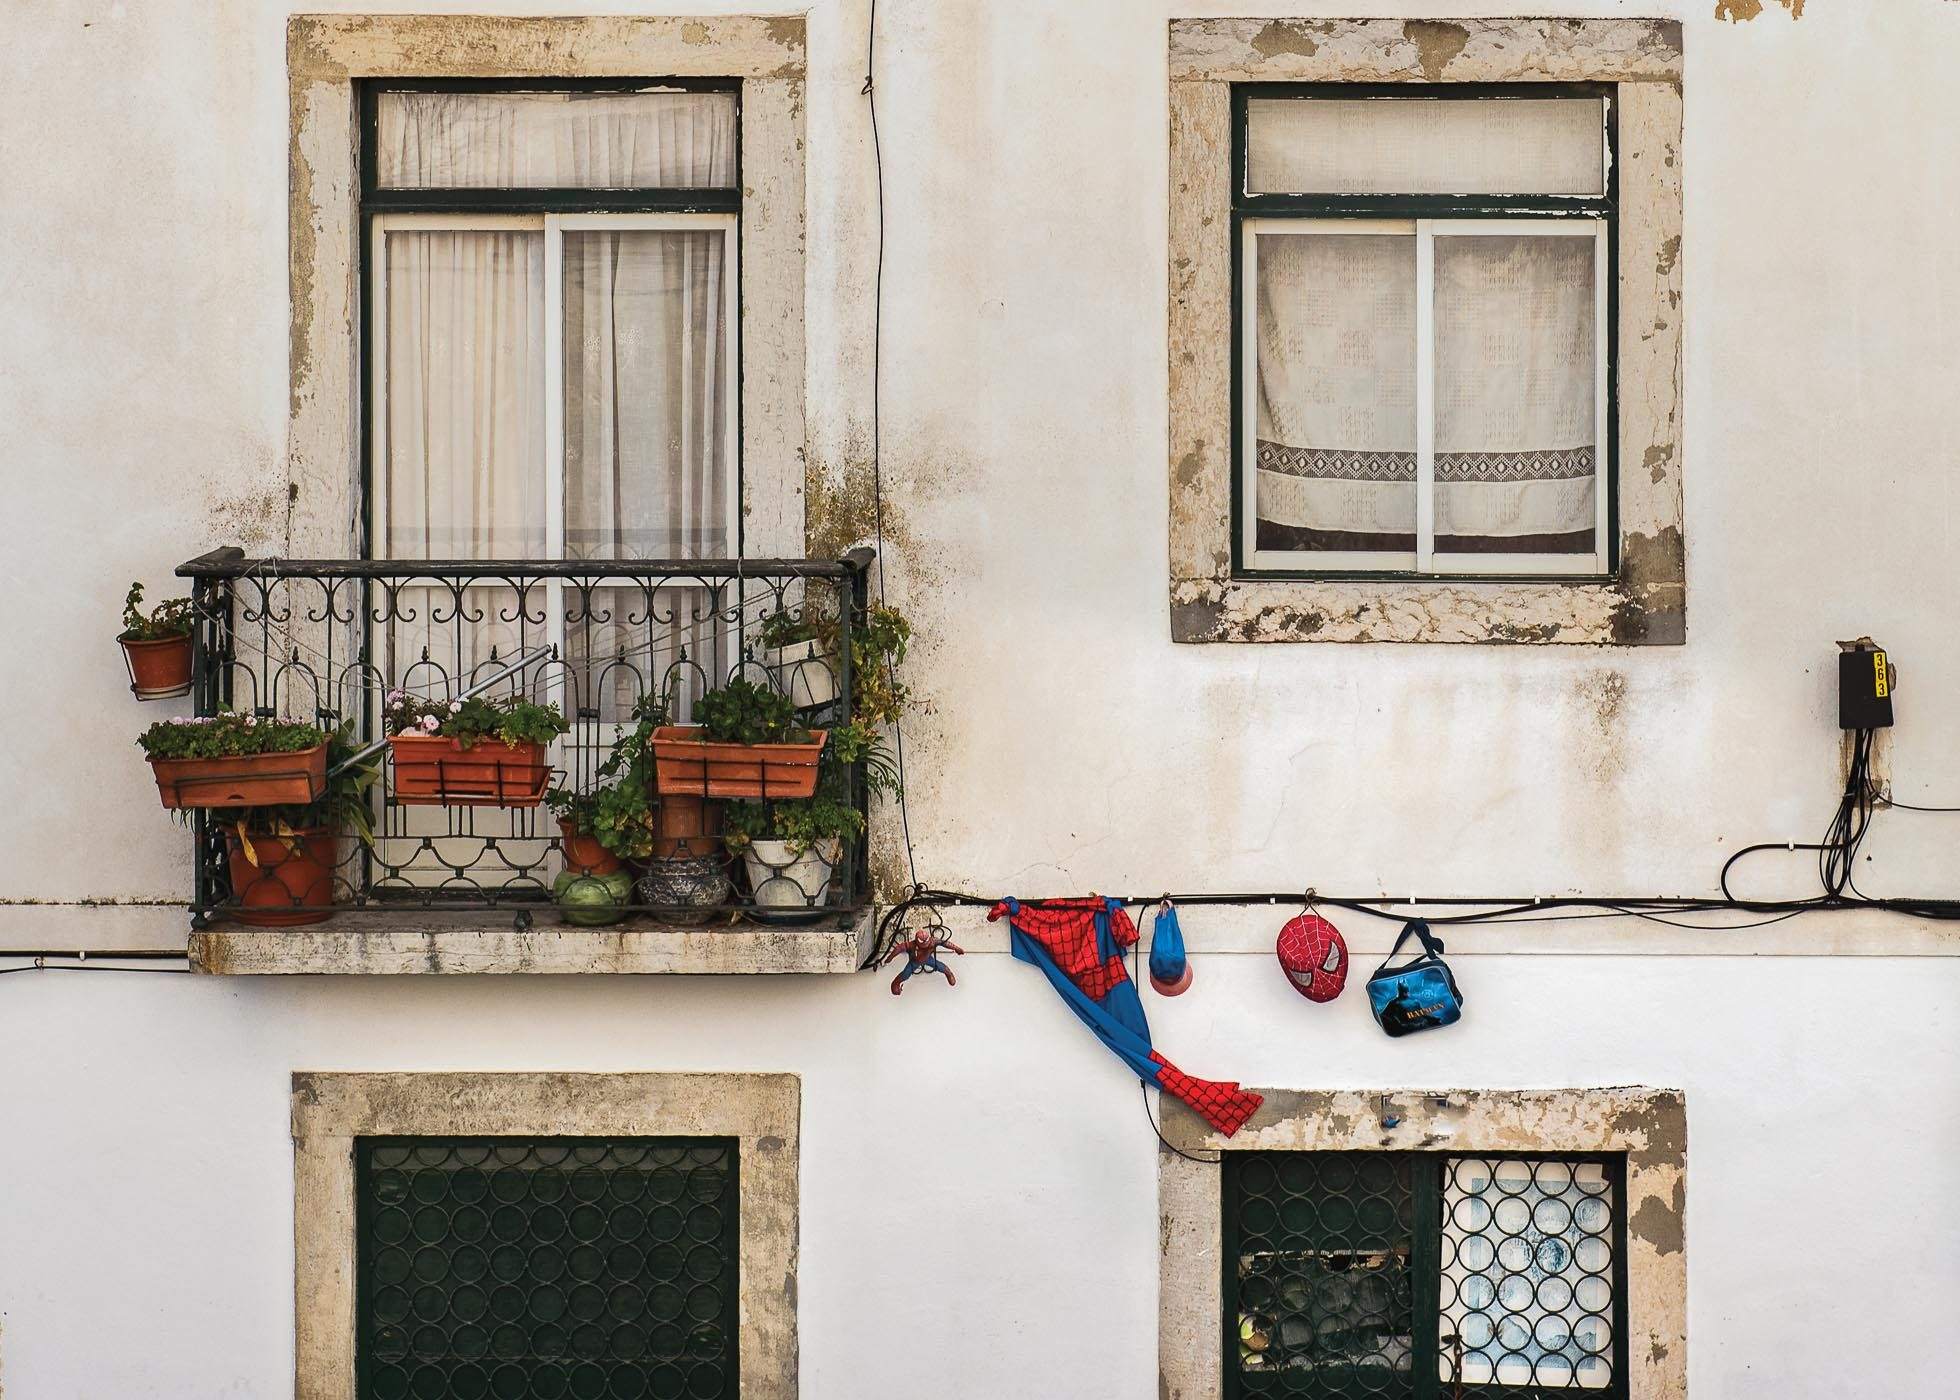 laundry drying in lisbon